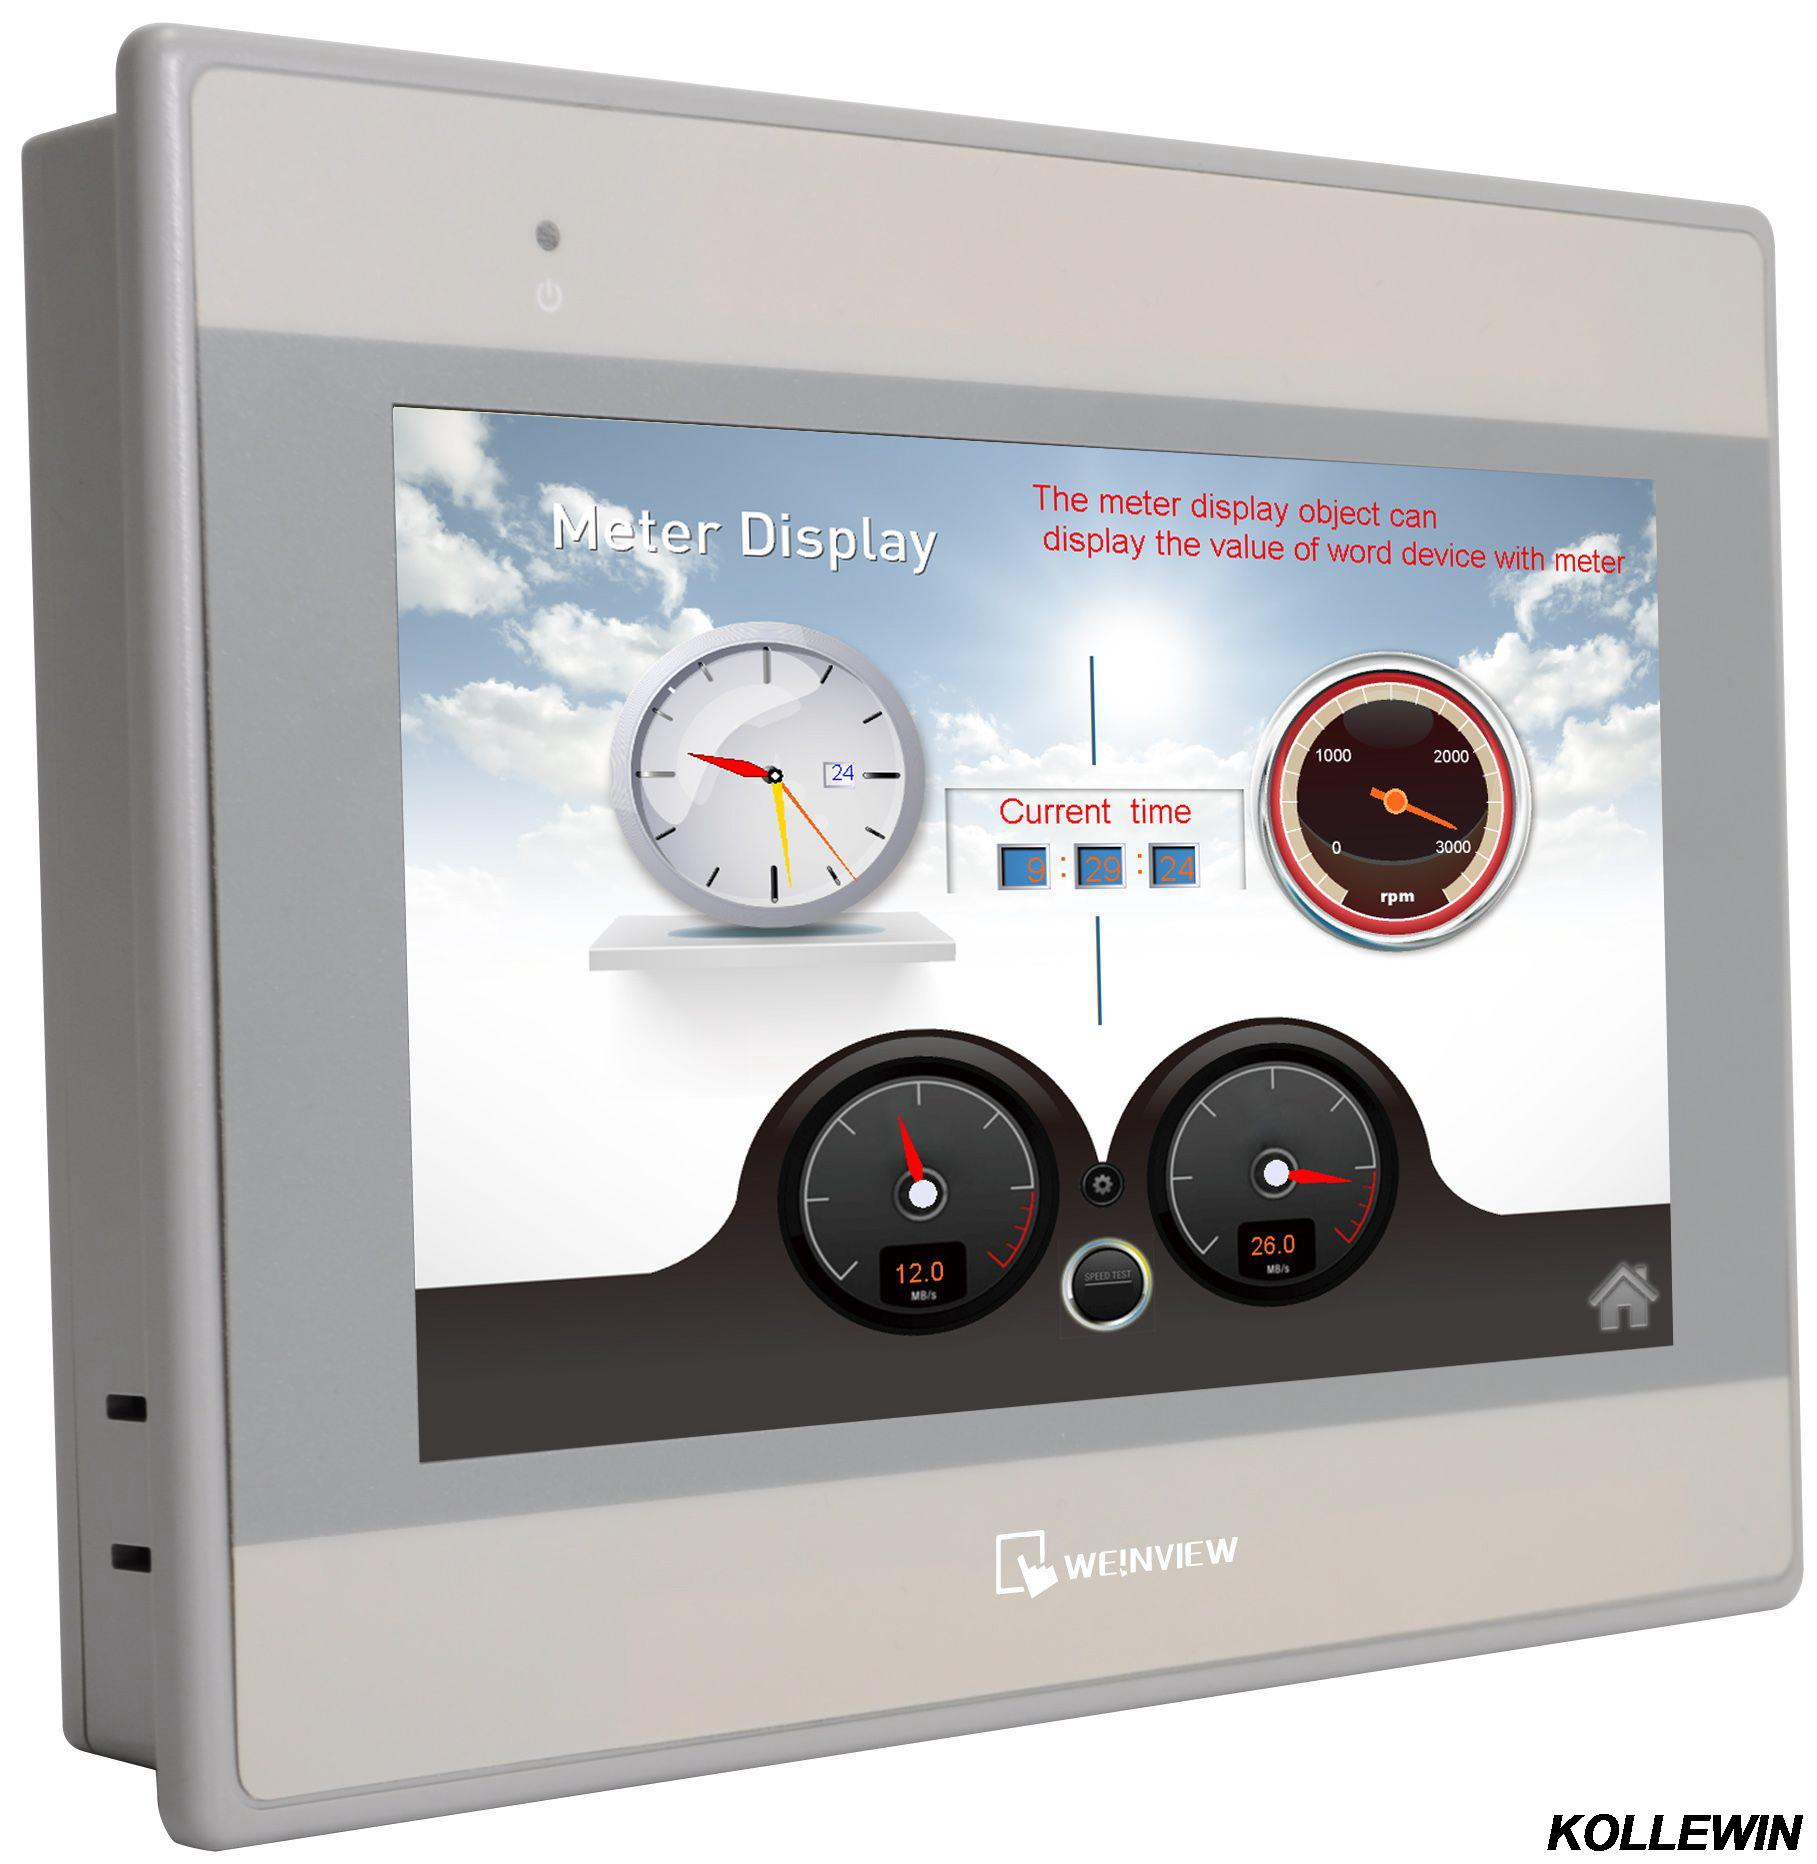 WEINVIEW Weintek MT8071iE touch panel HMI 7 TFT 800x480 32Bits 600MHZ 1 yearwarranty (COMPATIBLE WITH ALLEN BRADLEY PLC'S) mt8071ie new weinview weintek hmi replace mt8070ie